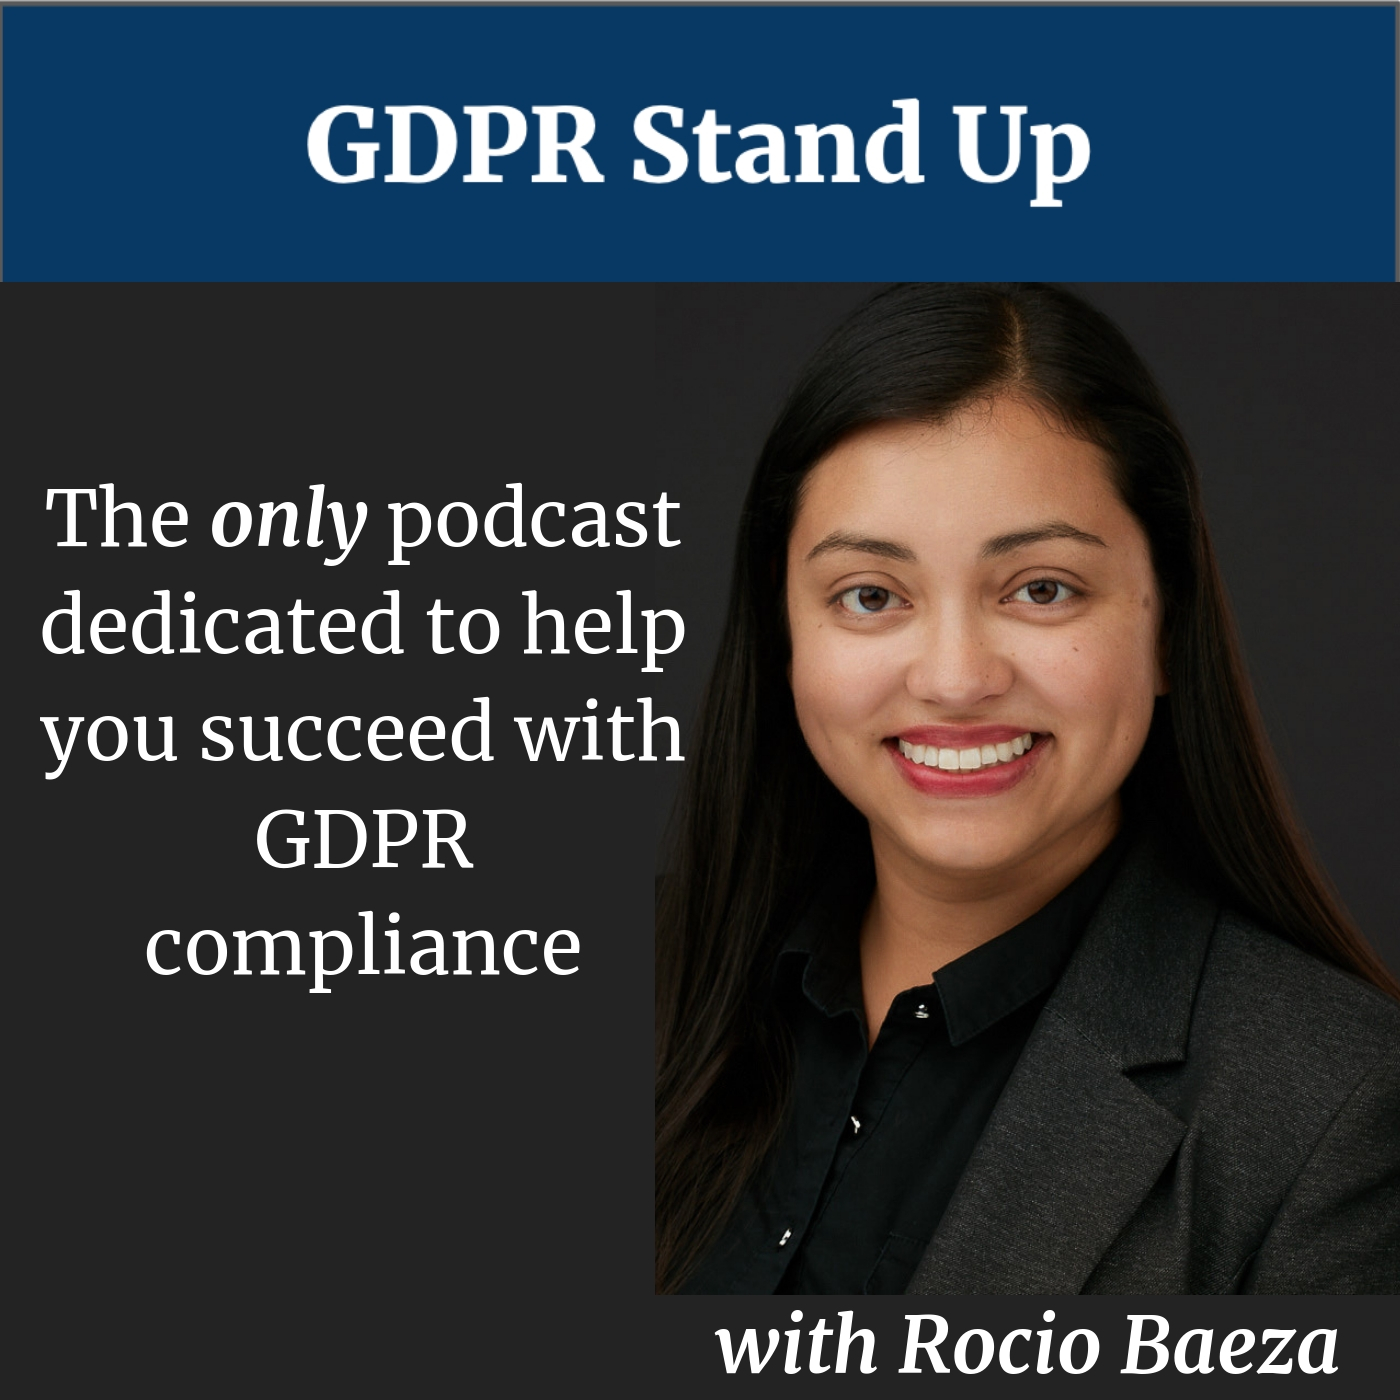 GDPR Stand Up